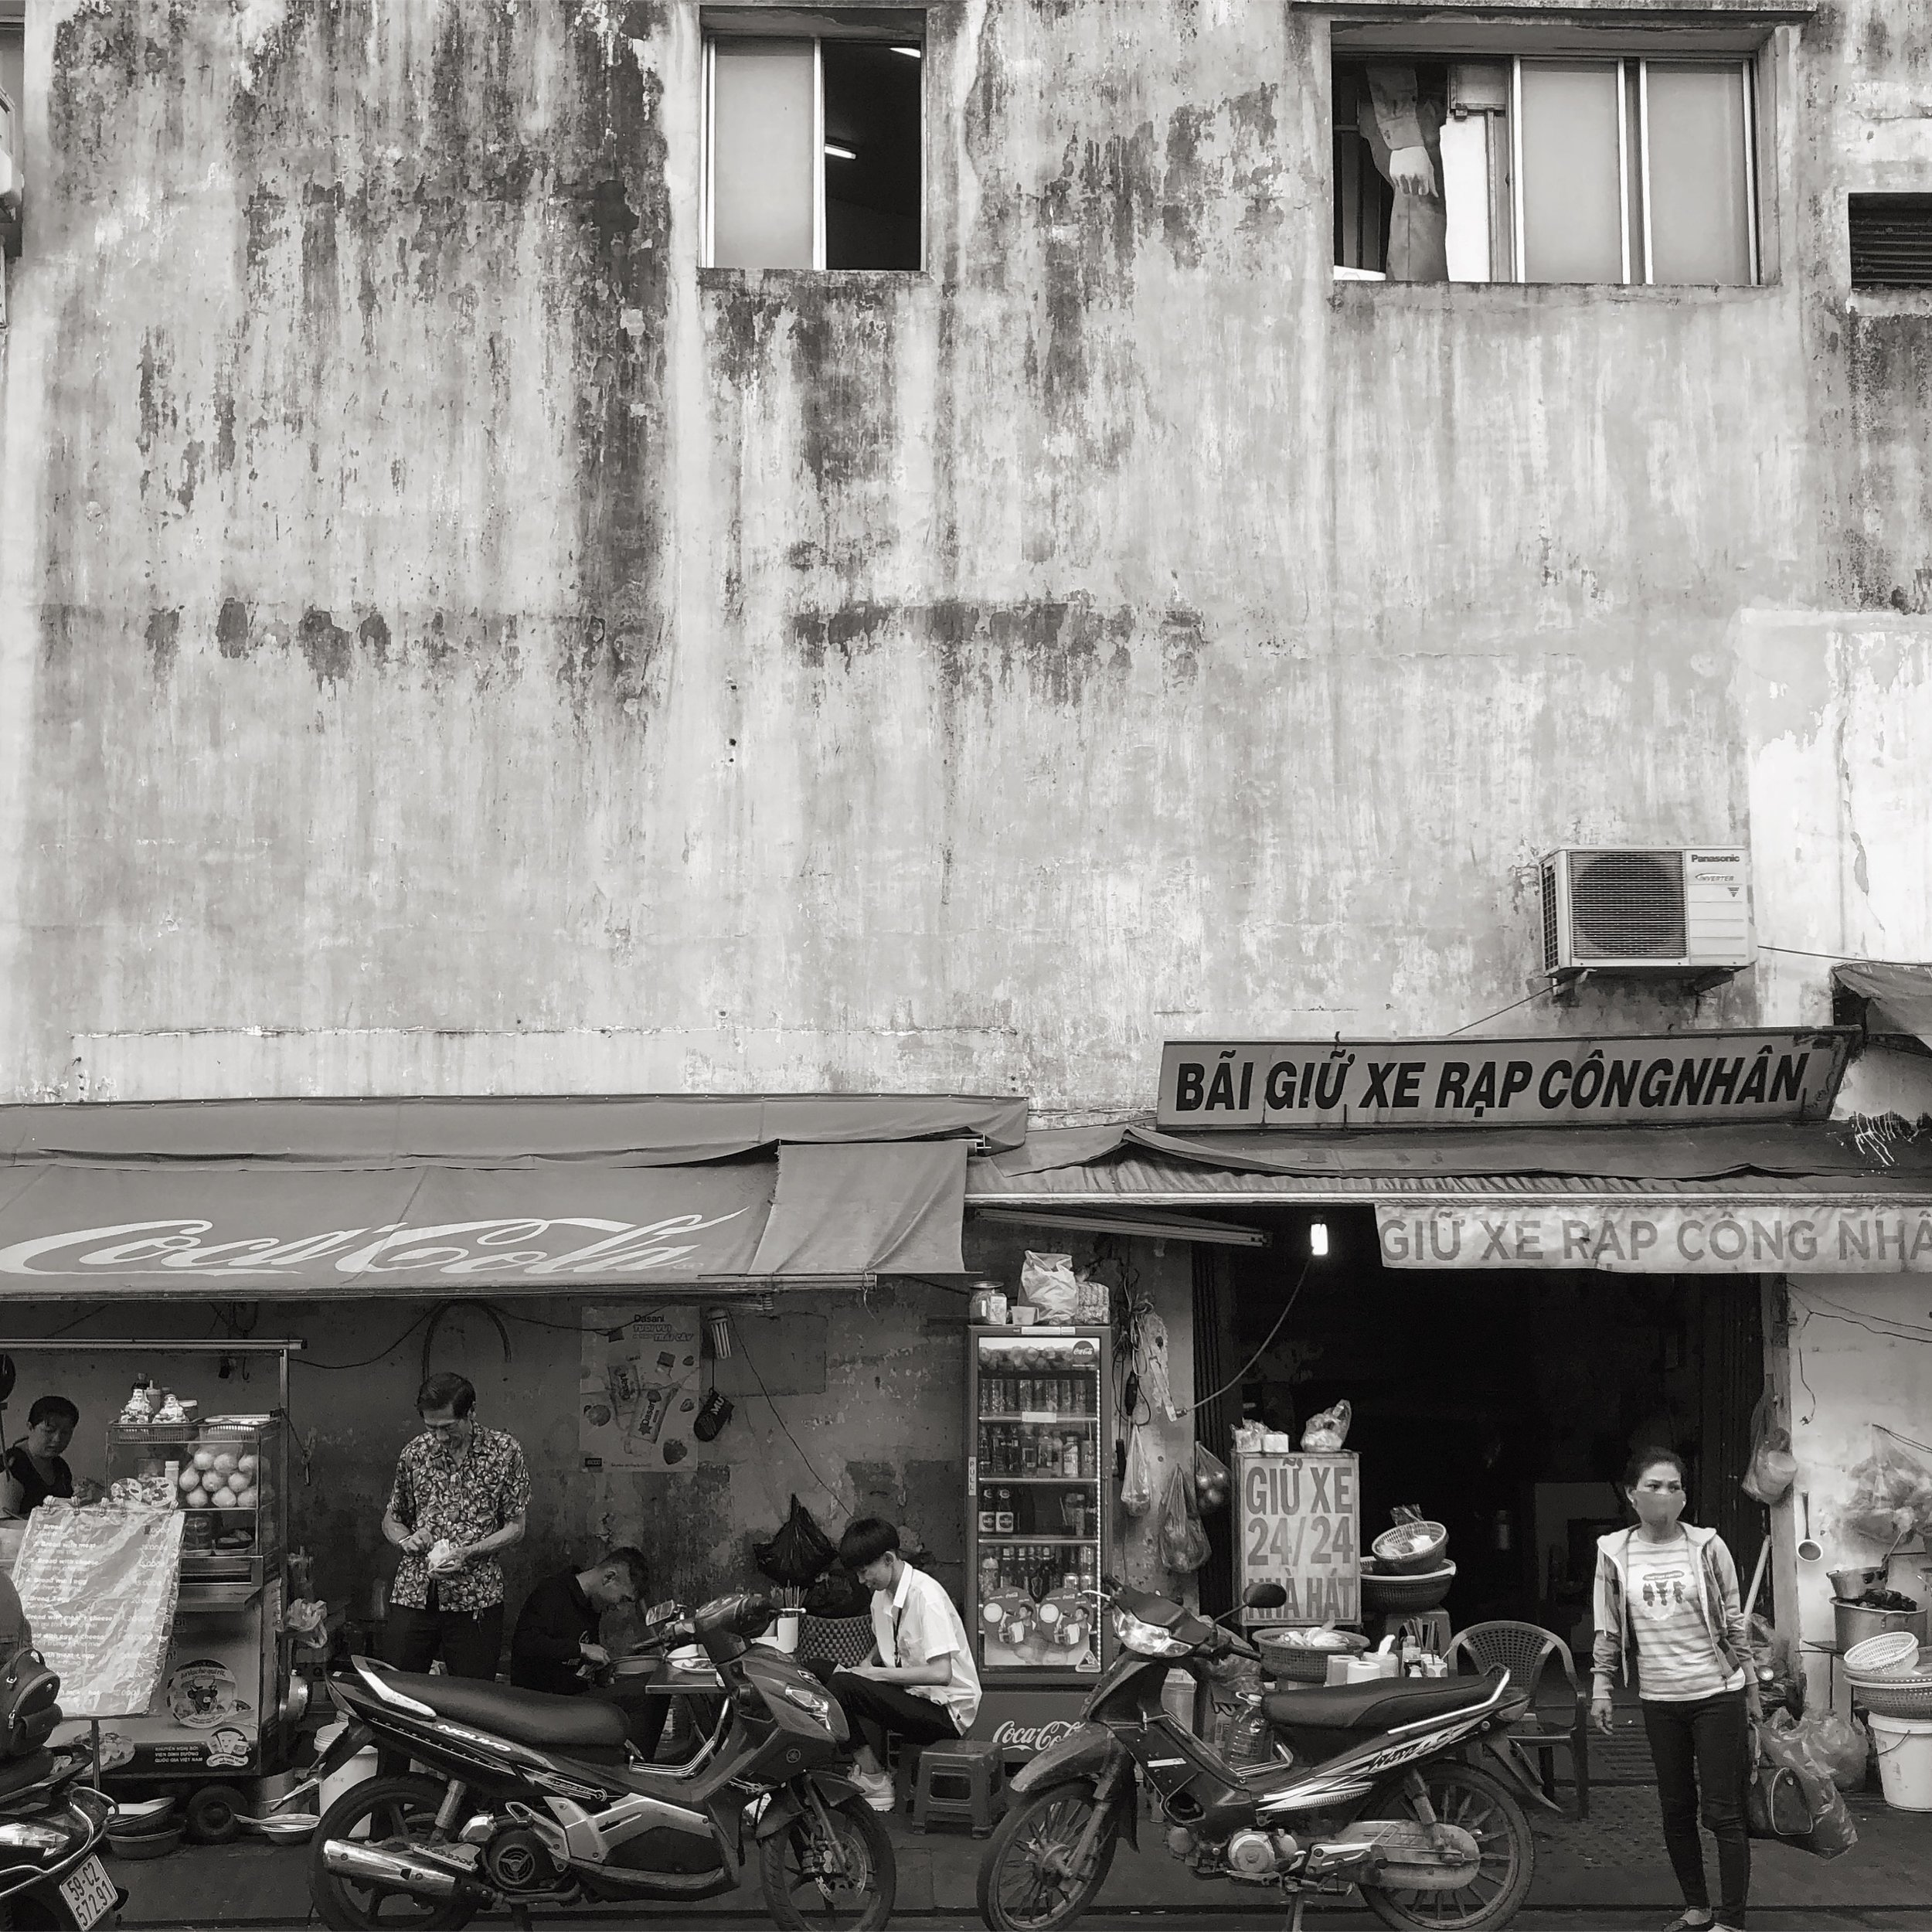 A scene from Ho Chi Minh City. One of the last I plan on taking with my iPhone.